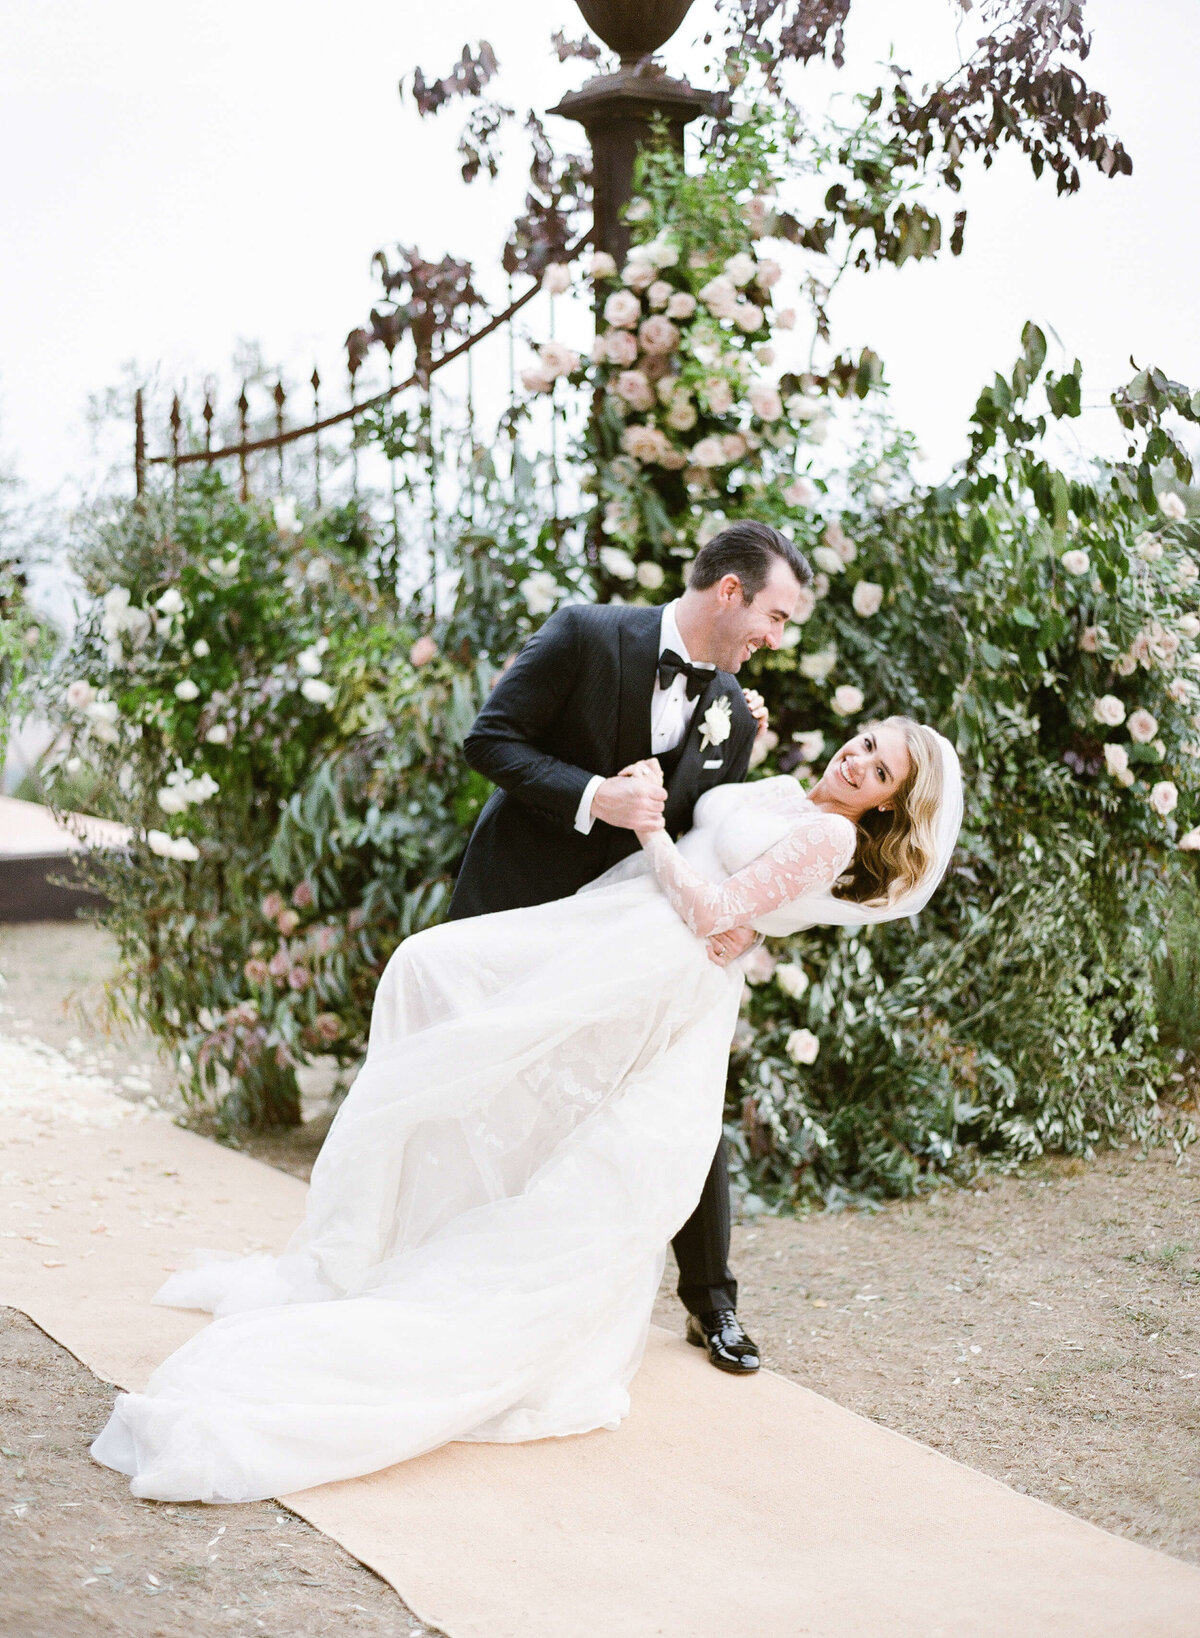 24-KTMerry-wedding-portrait-Kate-Upton-Justin-Verlander